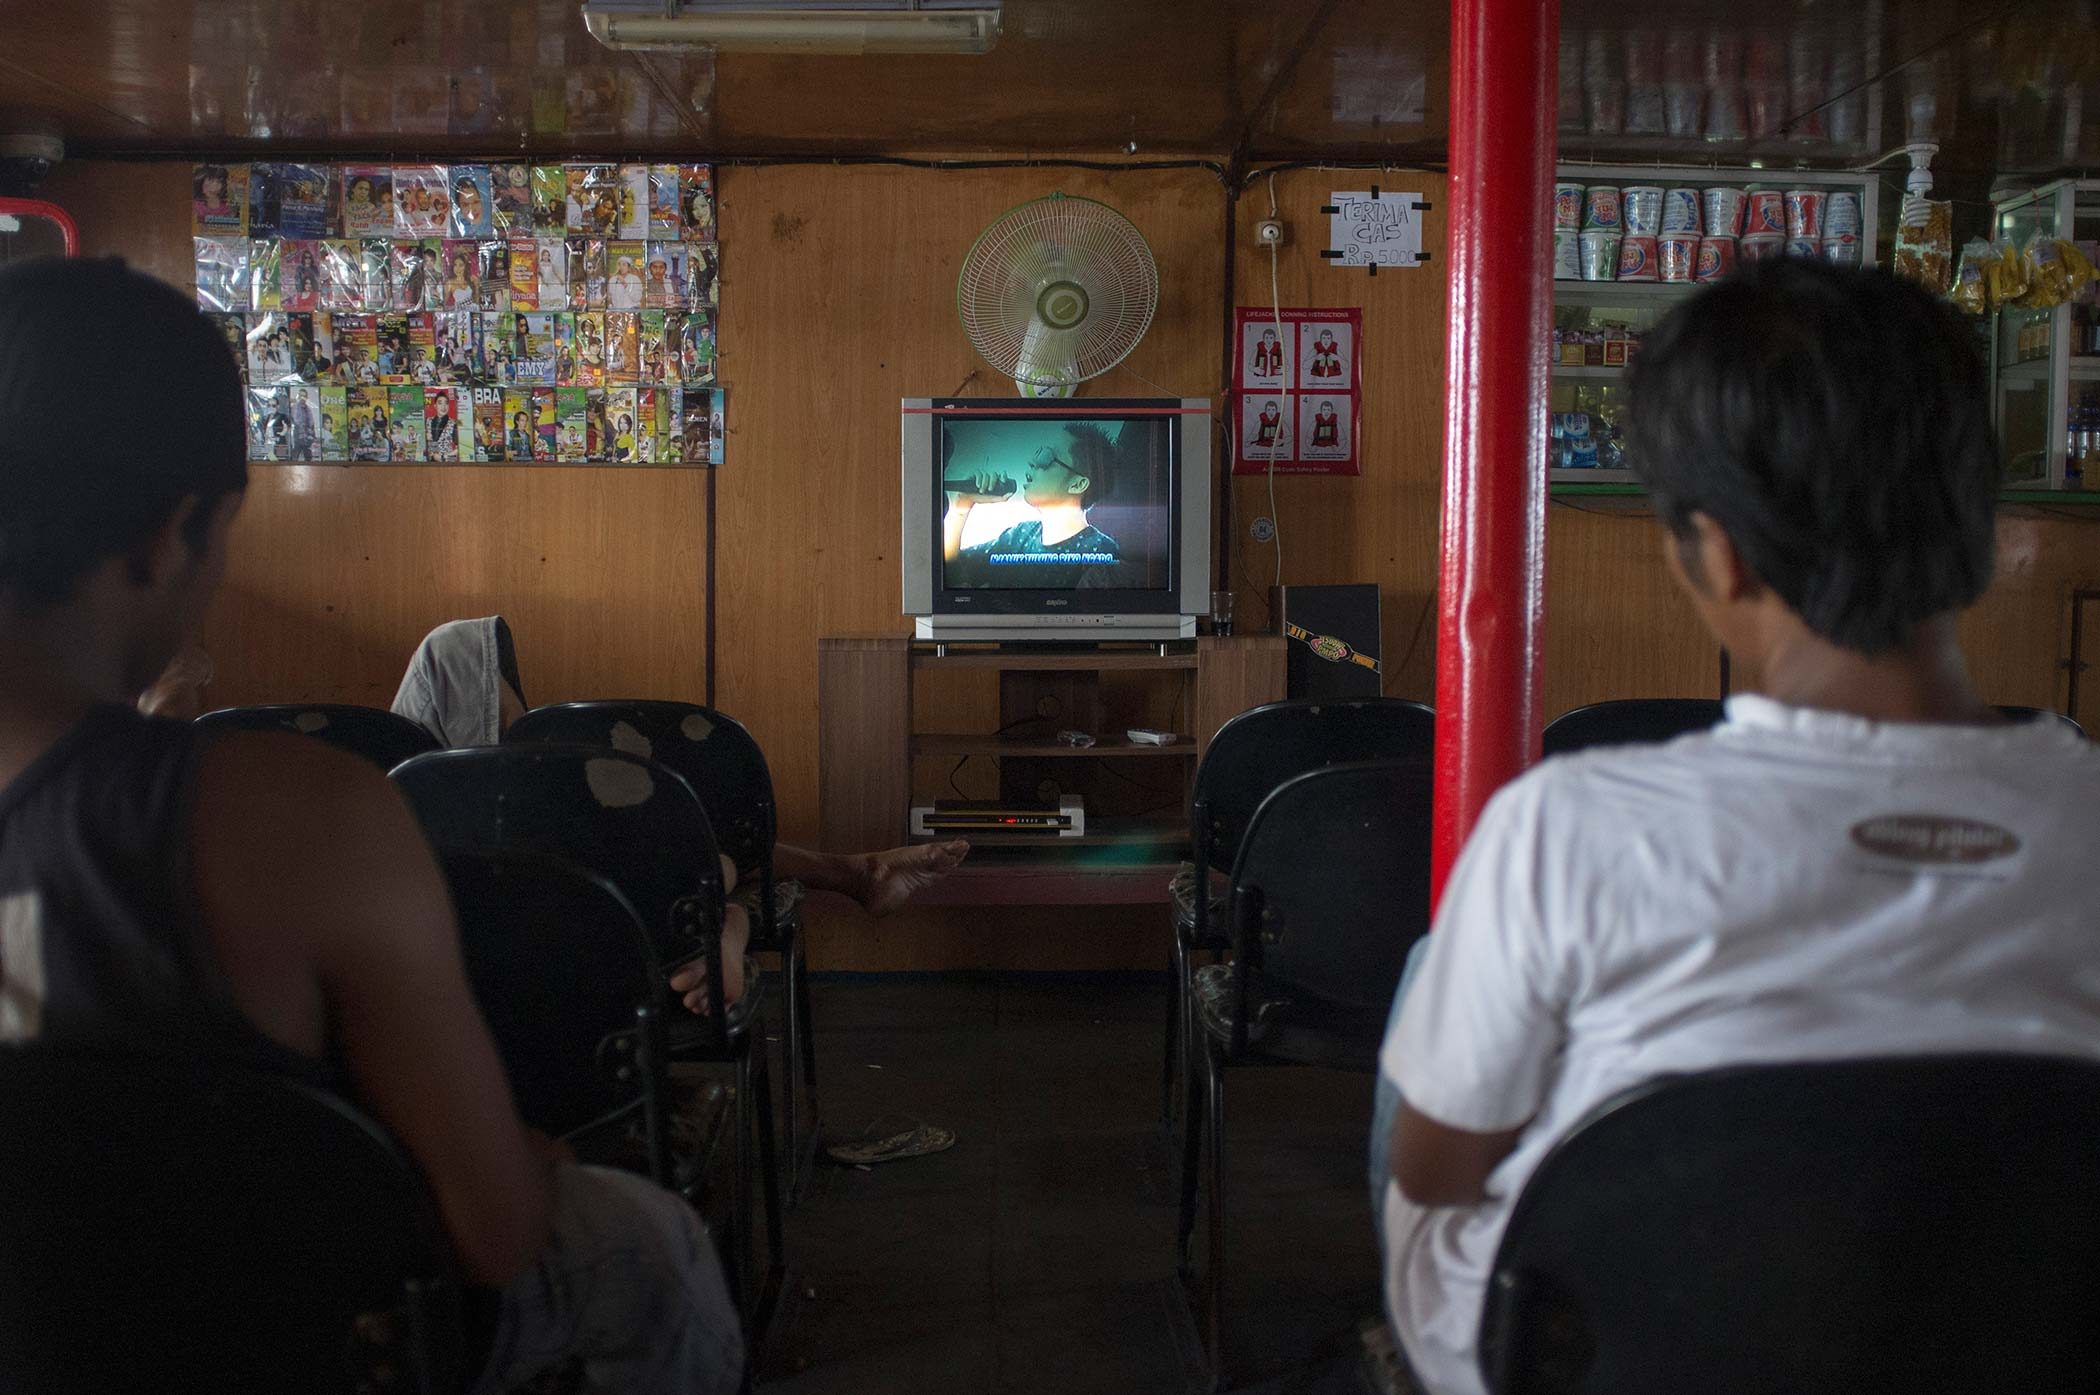 Public cabin with chairs, vendors and TV.